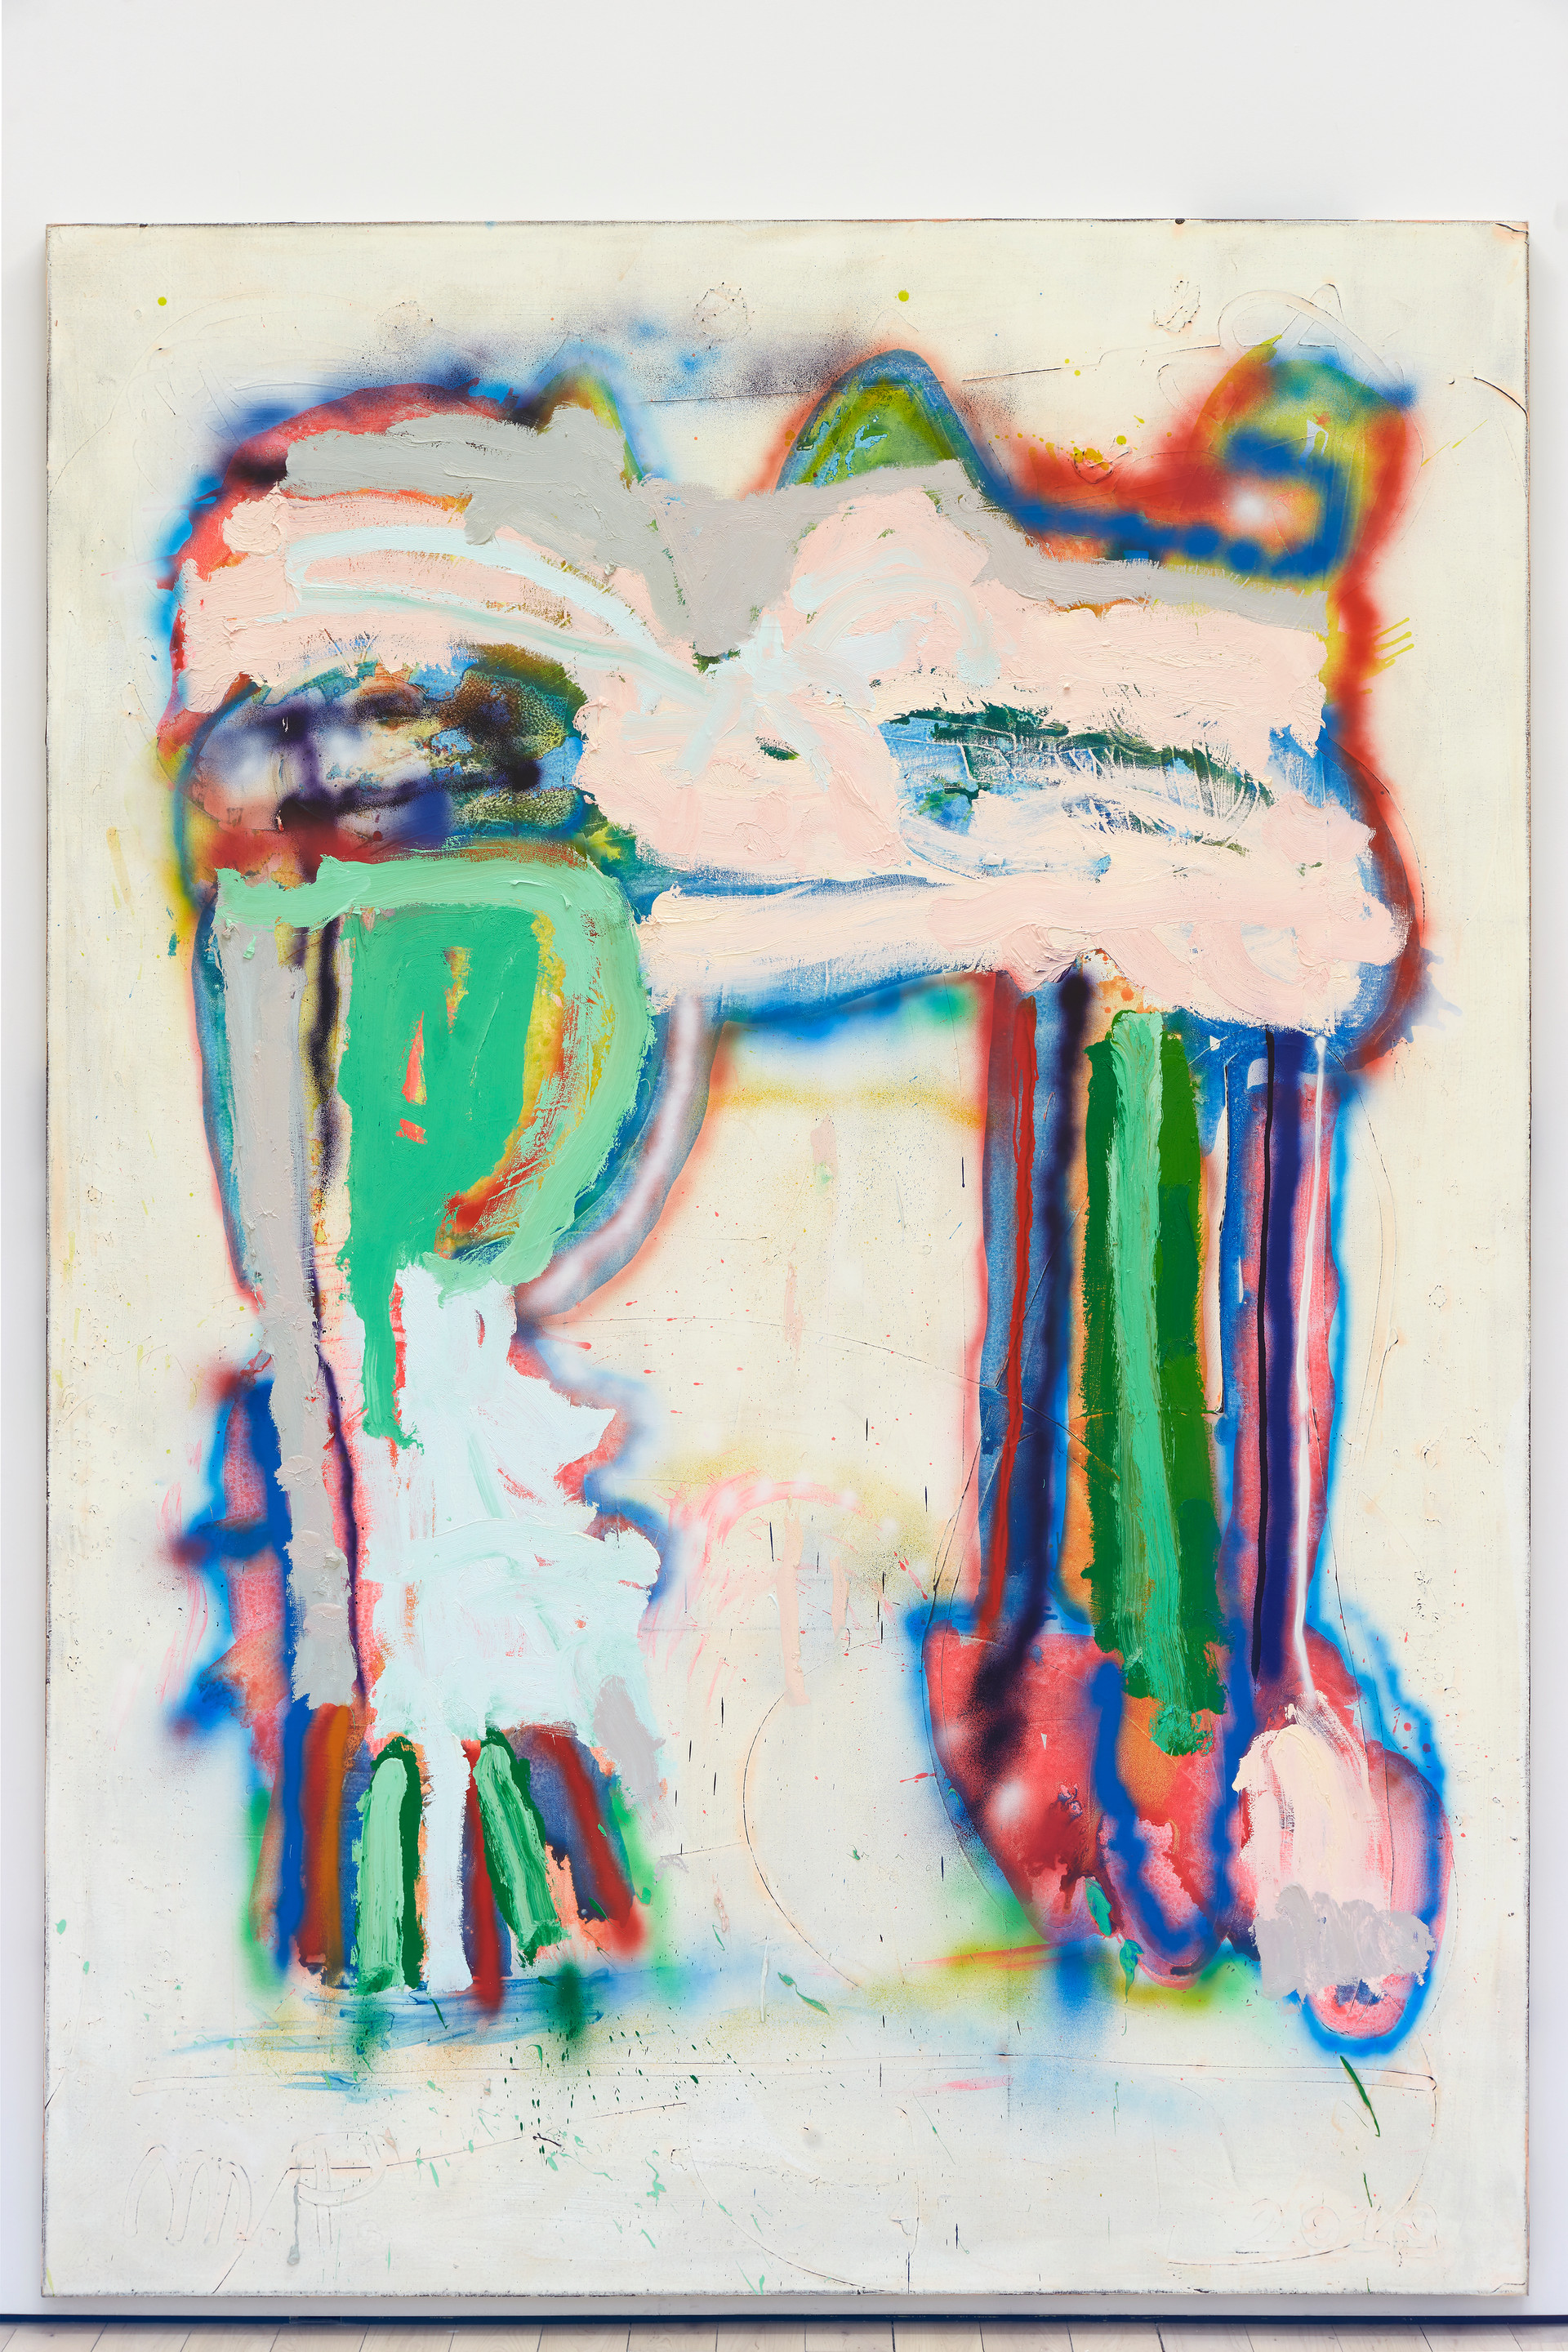 Marco Pariani  Sometimes Legs, 2020  Oil, acrylic and spray paint on canvas  72 x 100 inches